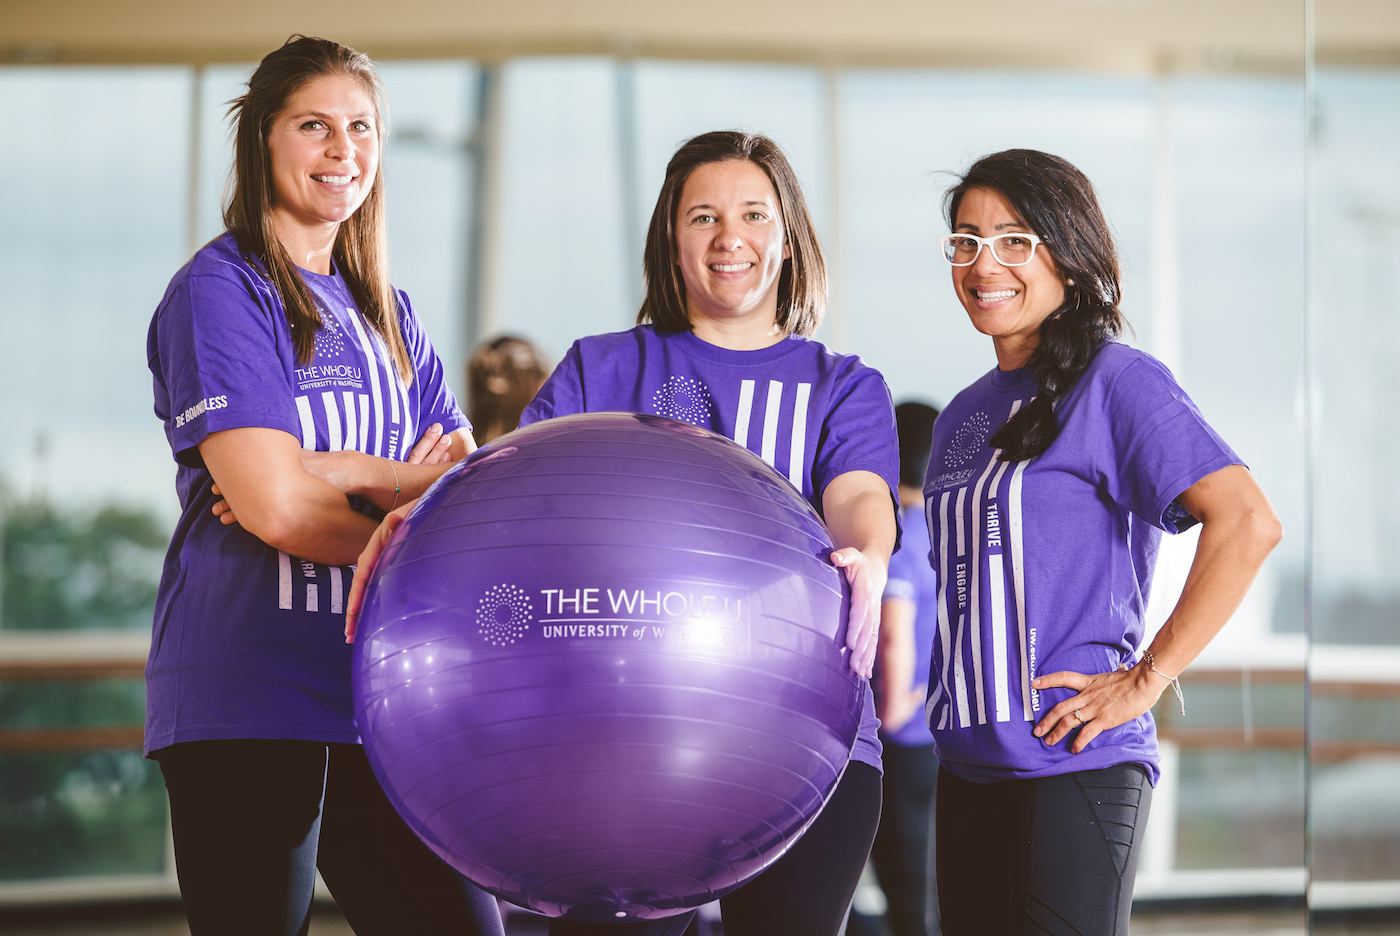 World's Largest Exercise Ball Workout